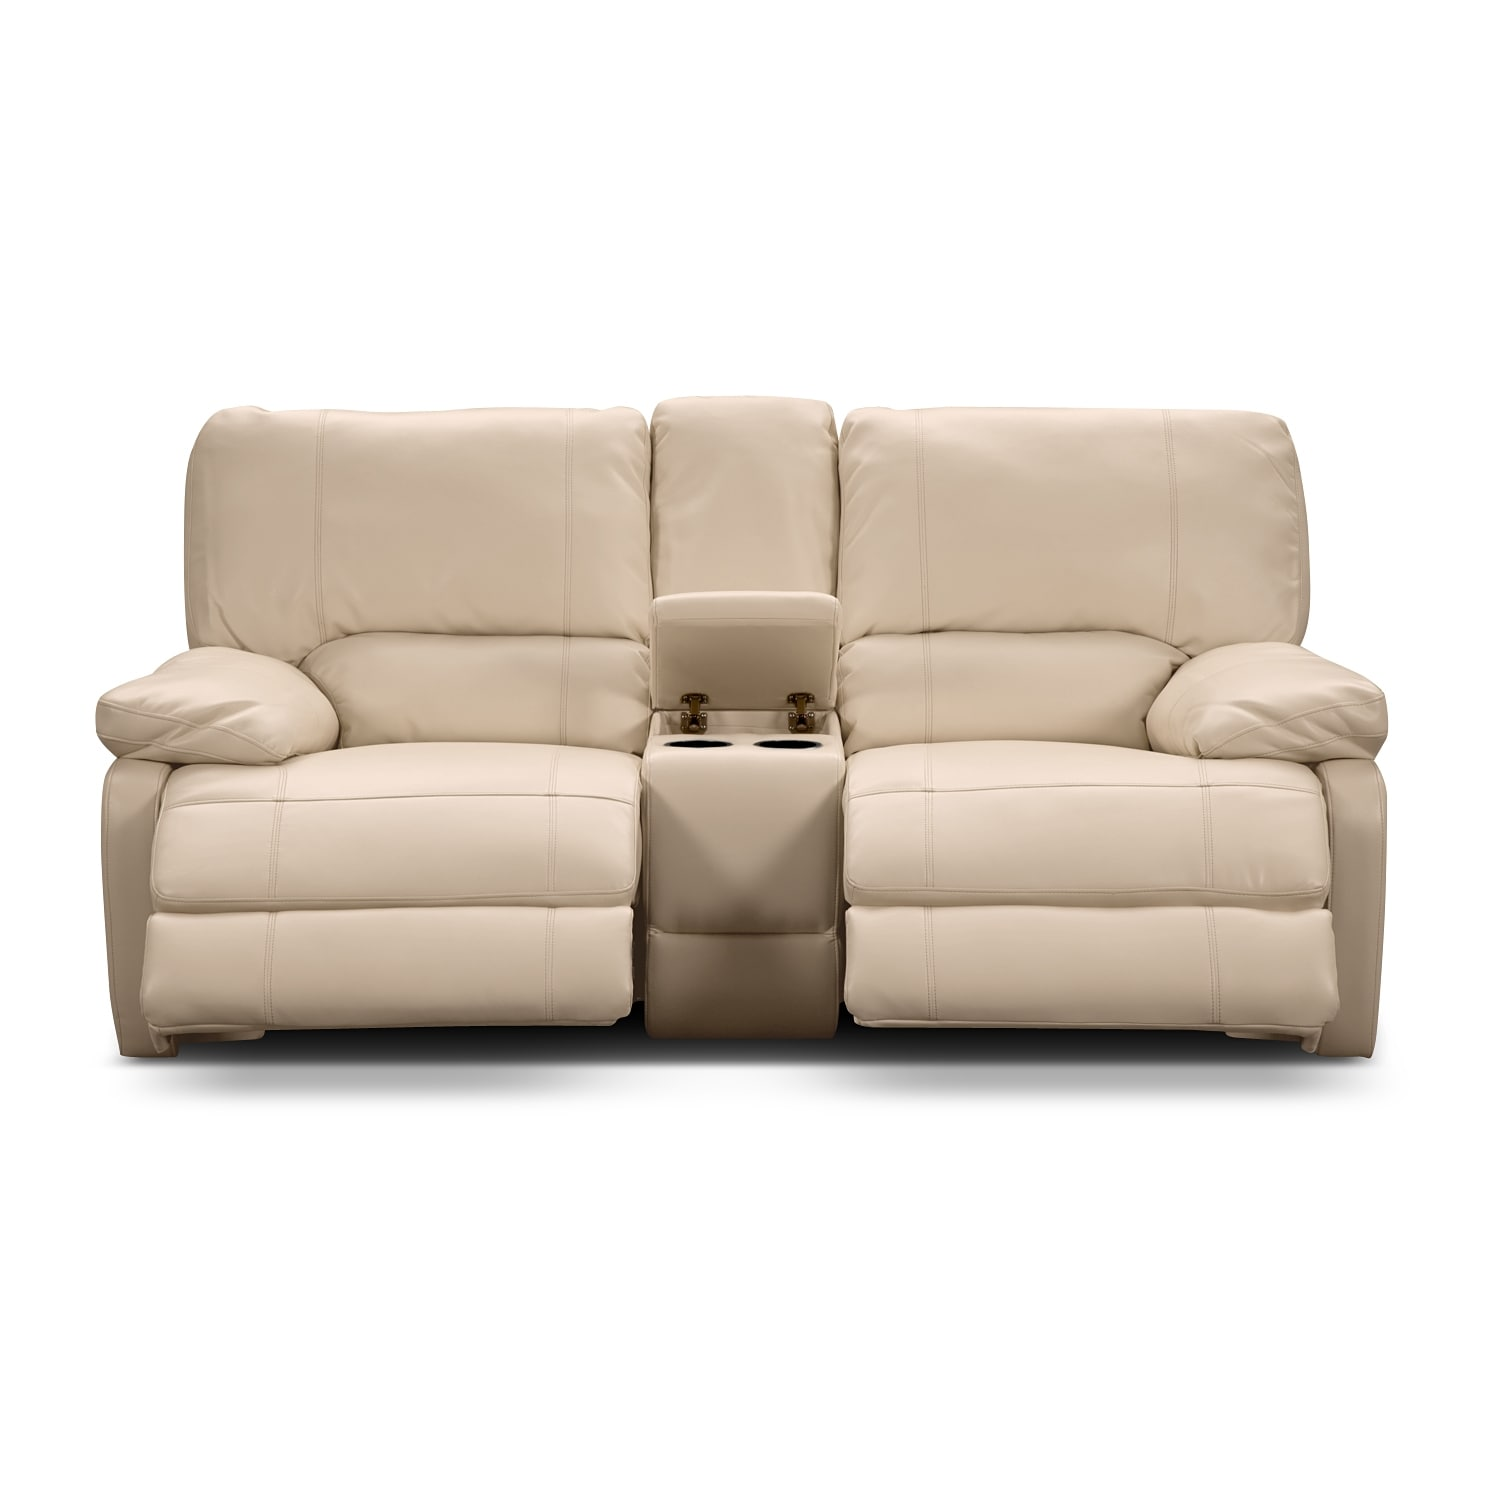 Coronado leather power reclining loveseat value city furniture Loveseats that recline